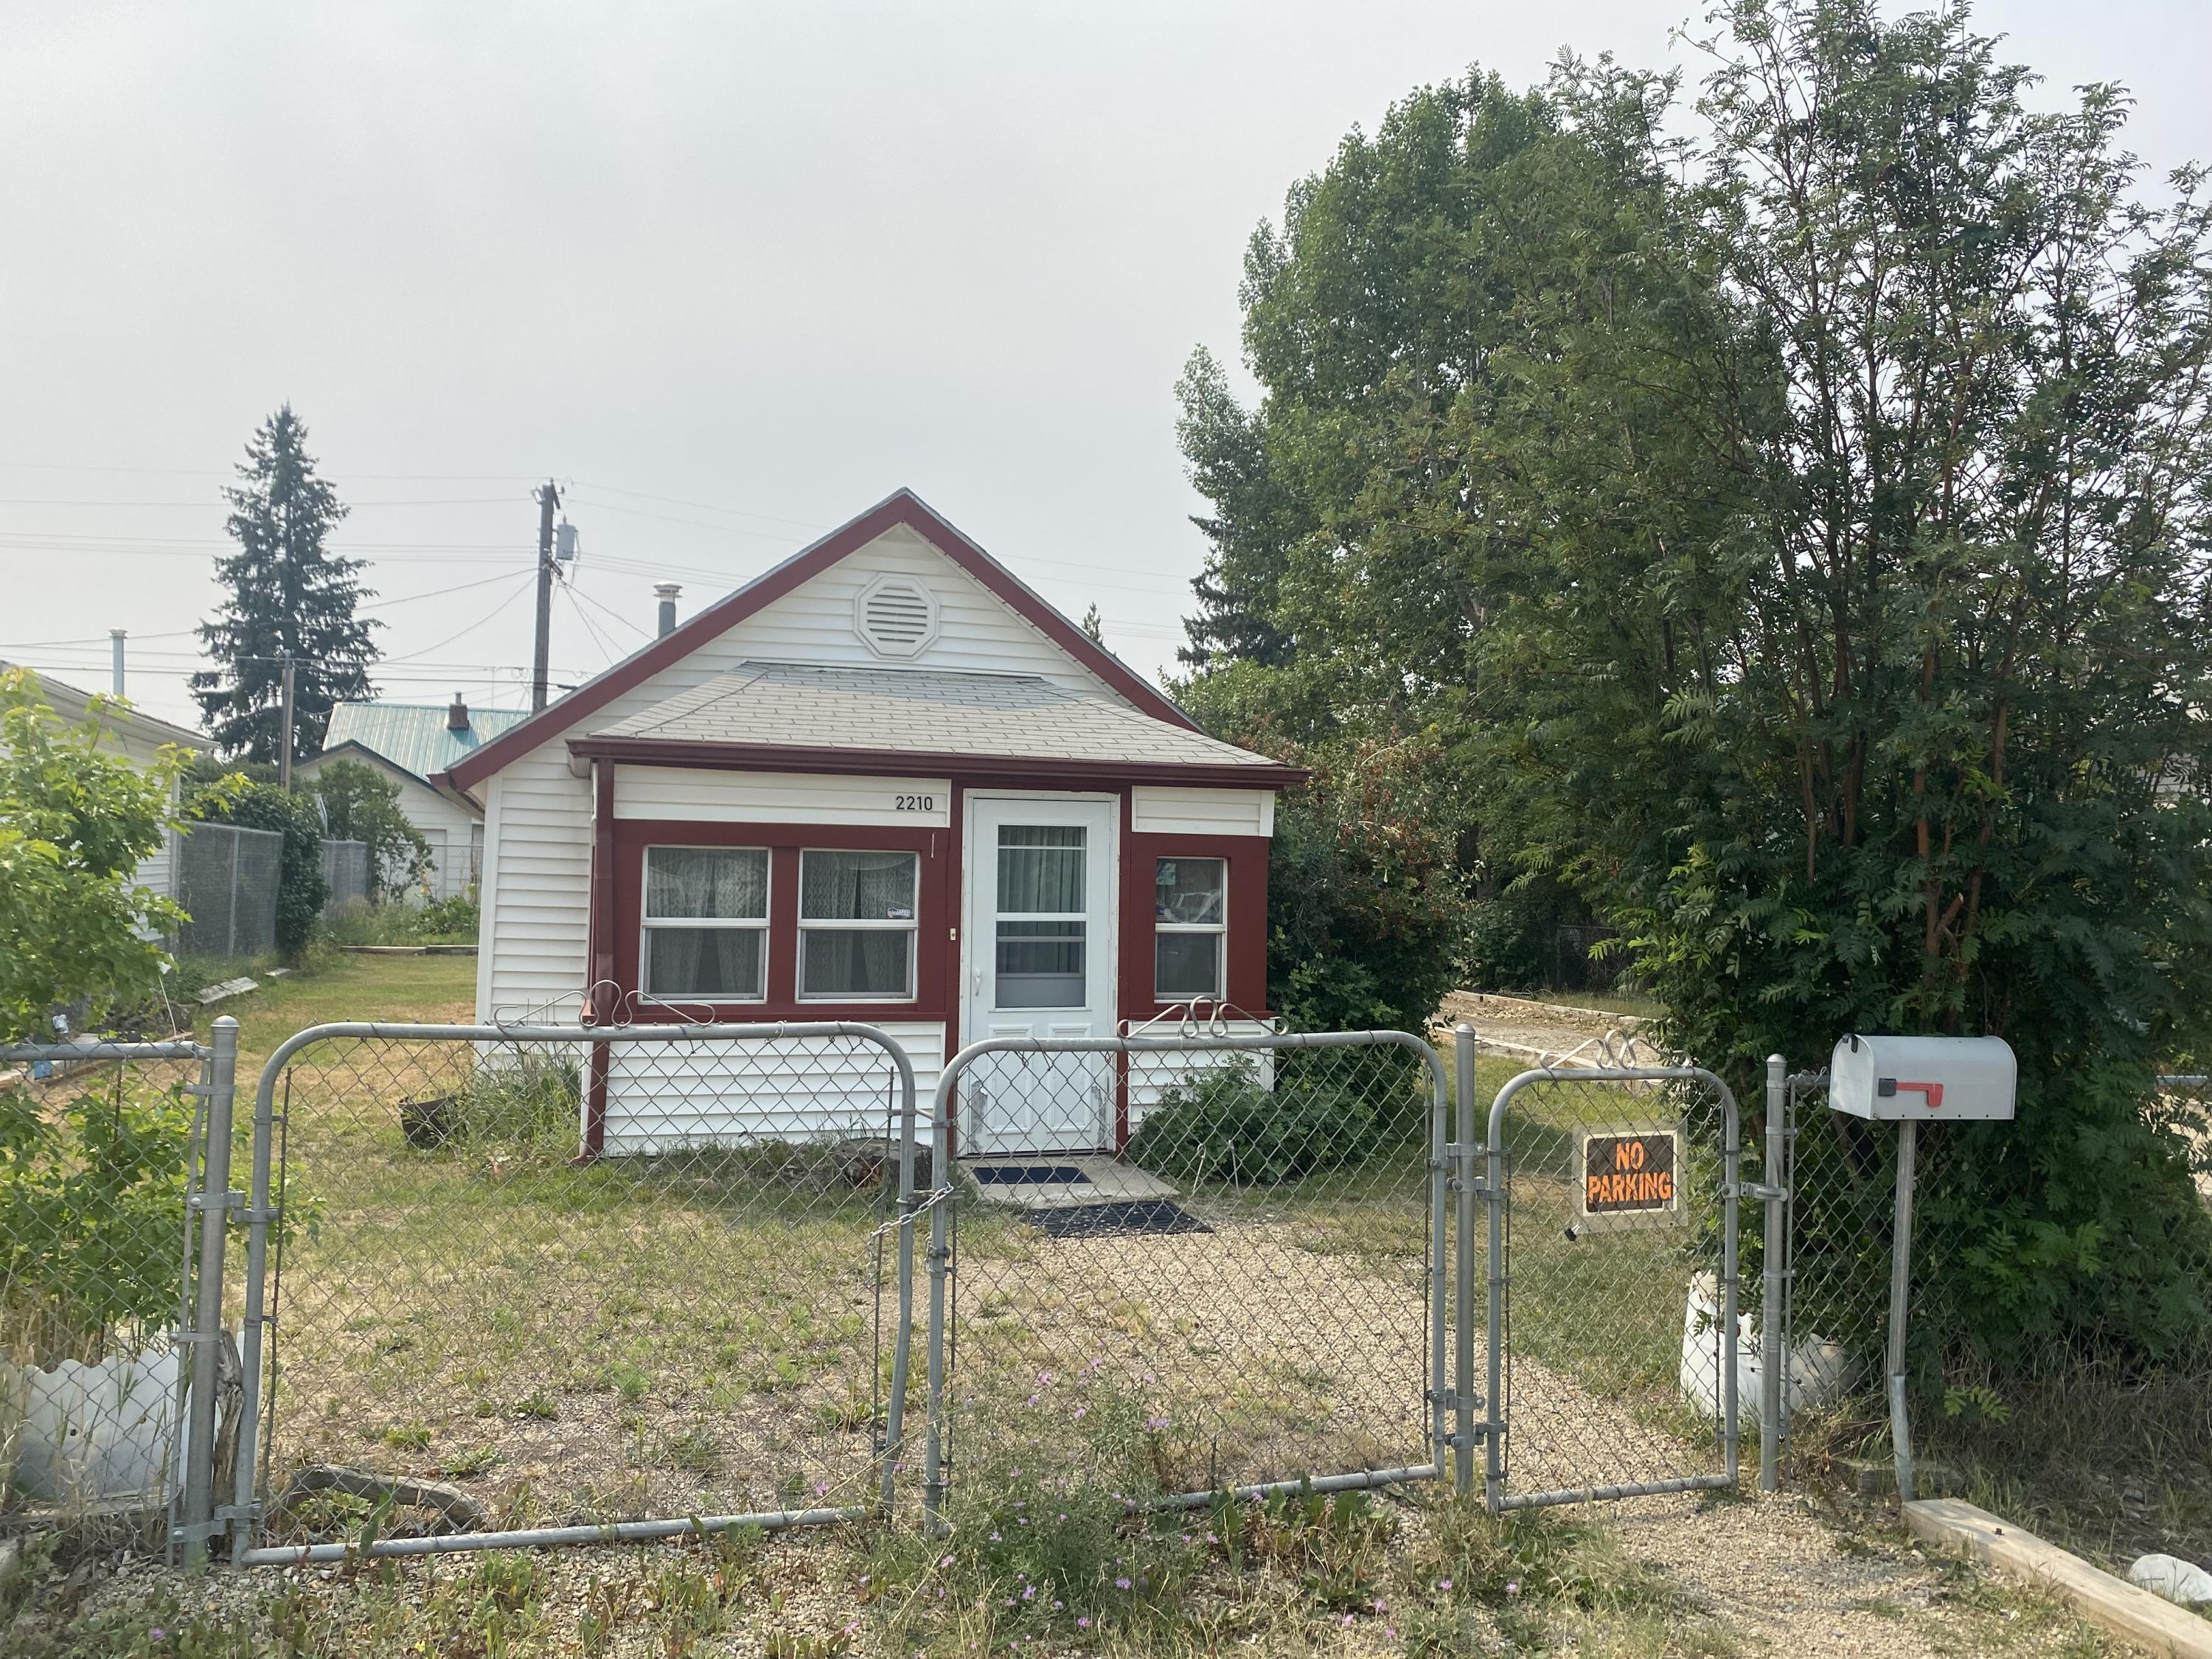 This 1 bed, 1 bath ''shotgun'' house could use a little TLC.   This home is apart of an estate and is being sold ''AS IS''.  The siding  windows and insulation have been updated, Rinnai furnace and newer hot water heater has been installed.     The single car detached garage was built in 2000.   Come see this house with lots of potential to make your own or turn into an investment property.Call Jen Williams at 406-465-8728 or your real estate professional to schedule a personal showing today!